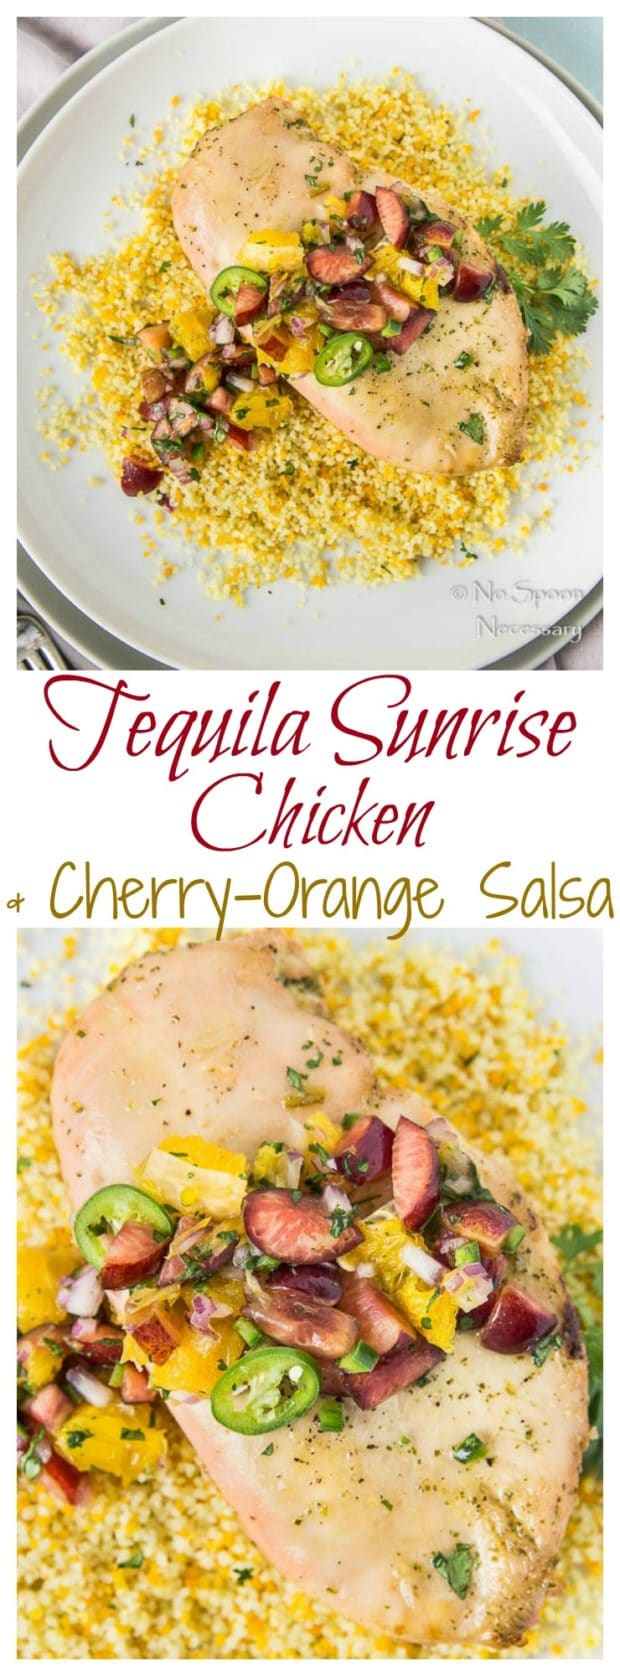 Tequila Sunrise Chicken with Cherry-Orange Salsa- long pin1